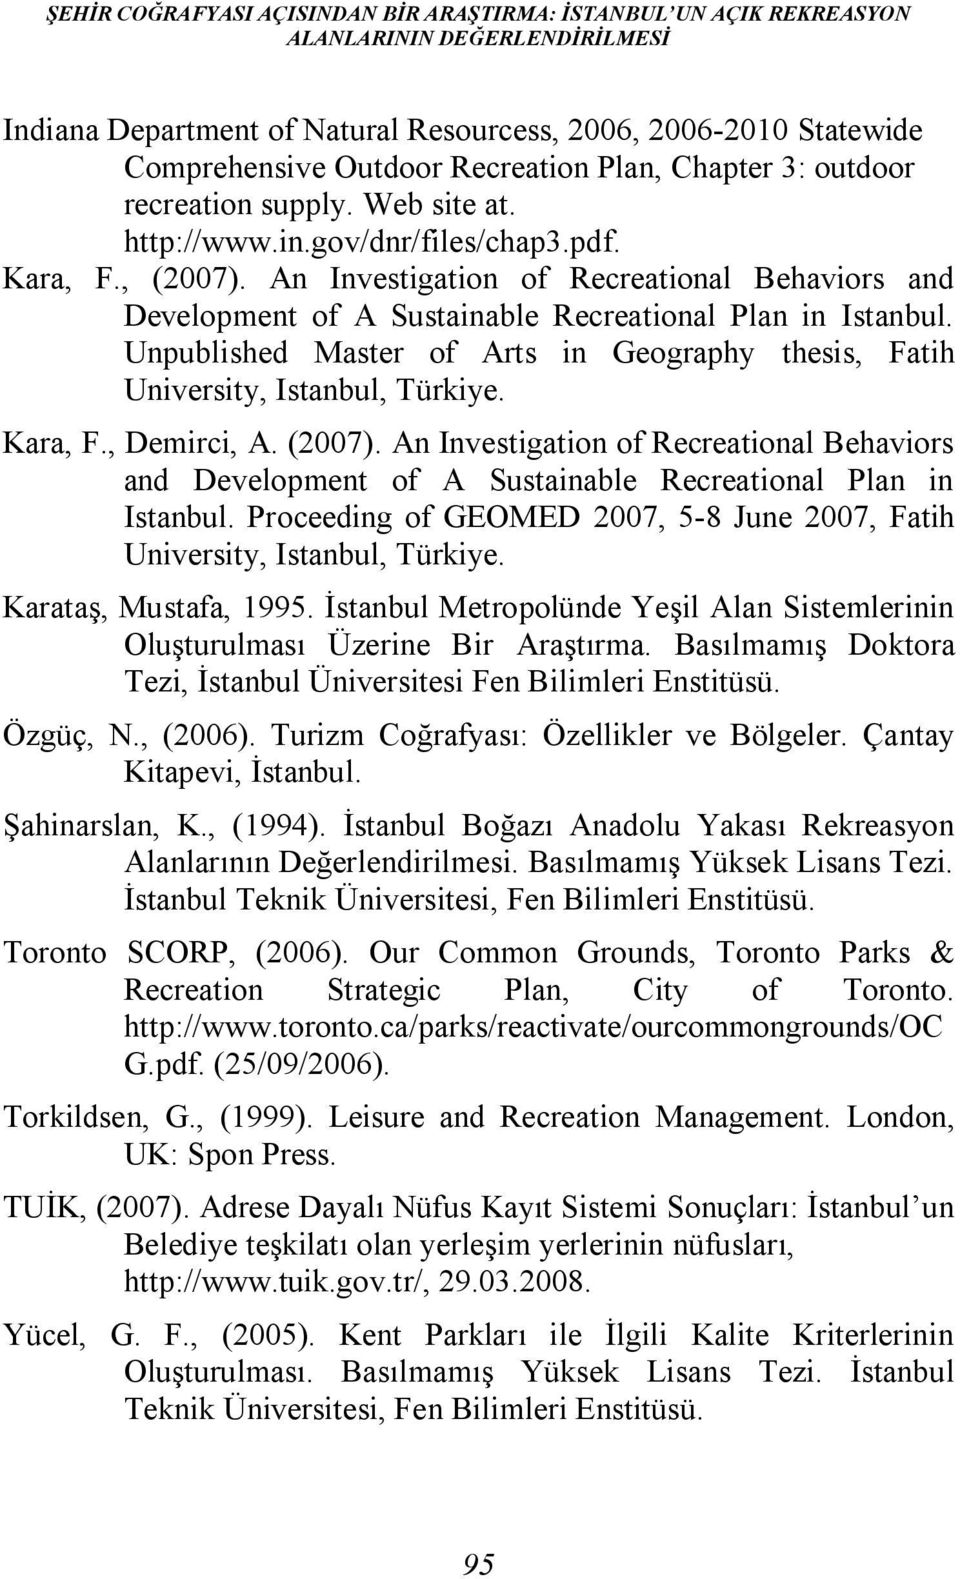 An Investigation of Recreational Behaviors and Development of A Sustainable Recreational Plan in Istanbul. Unpublished Master of Arts in Geography thesis, Fatih University, Istanbul, Türkiye. Kara, F.